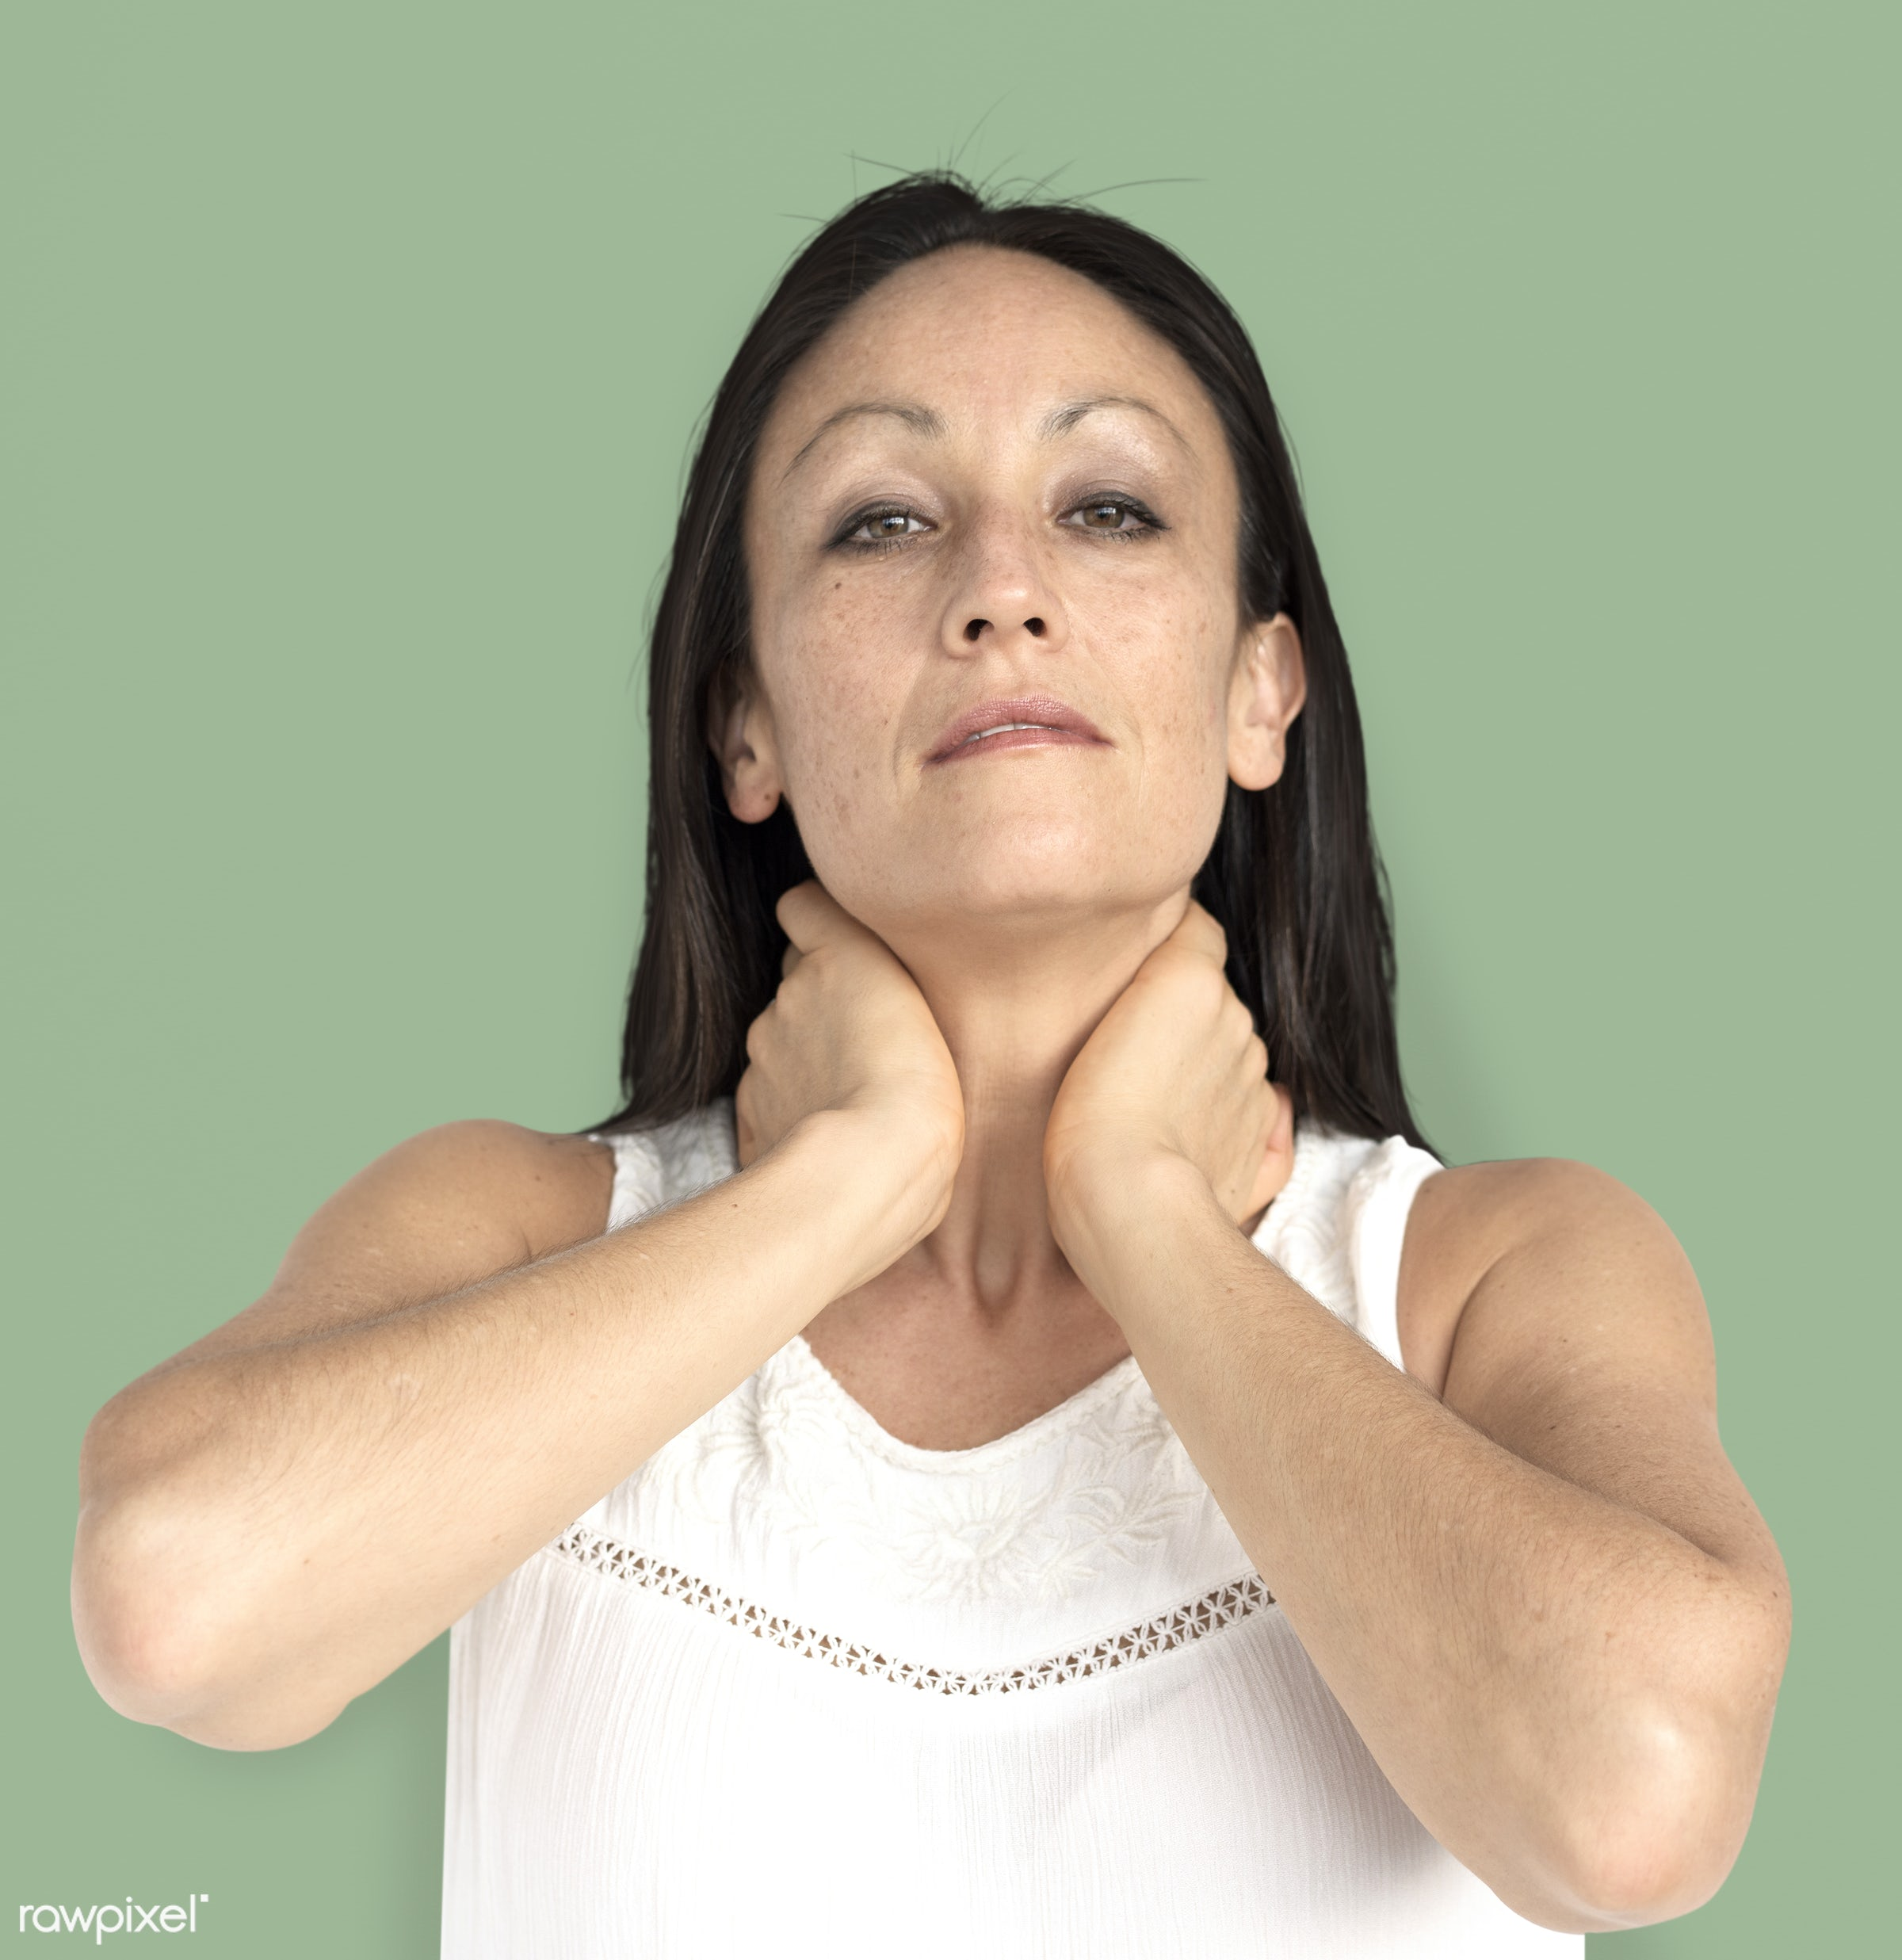 studio, model, person, neck pain, people, race, style, solo, woman, lifestyle, casual, feminism, isolated, green, gesture,...